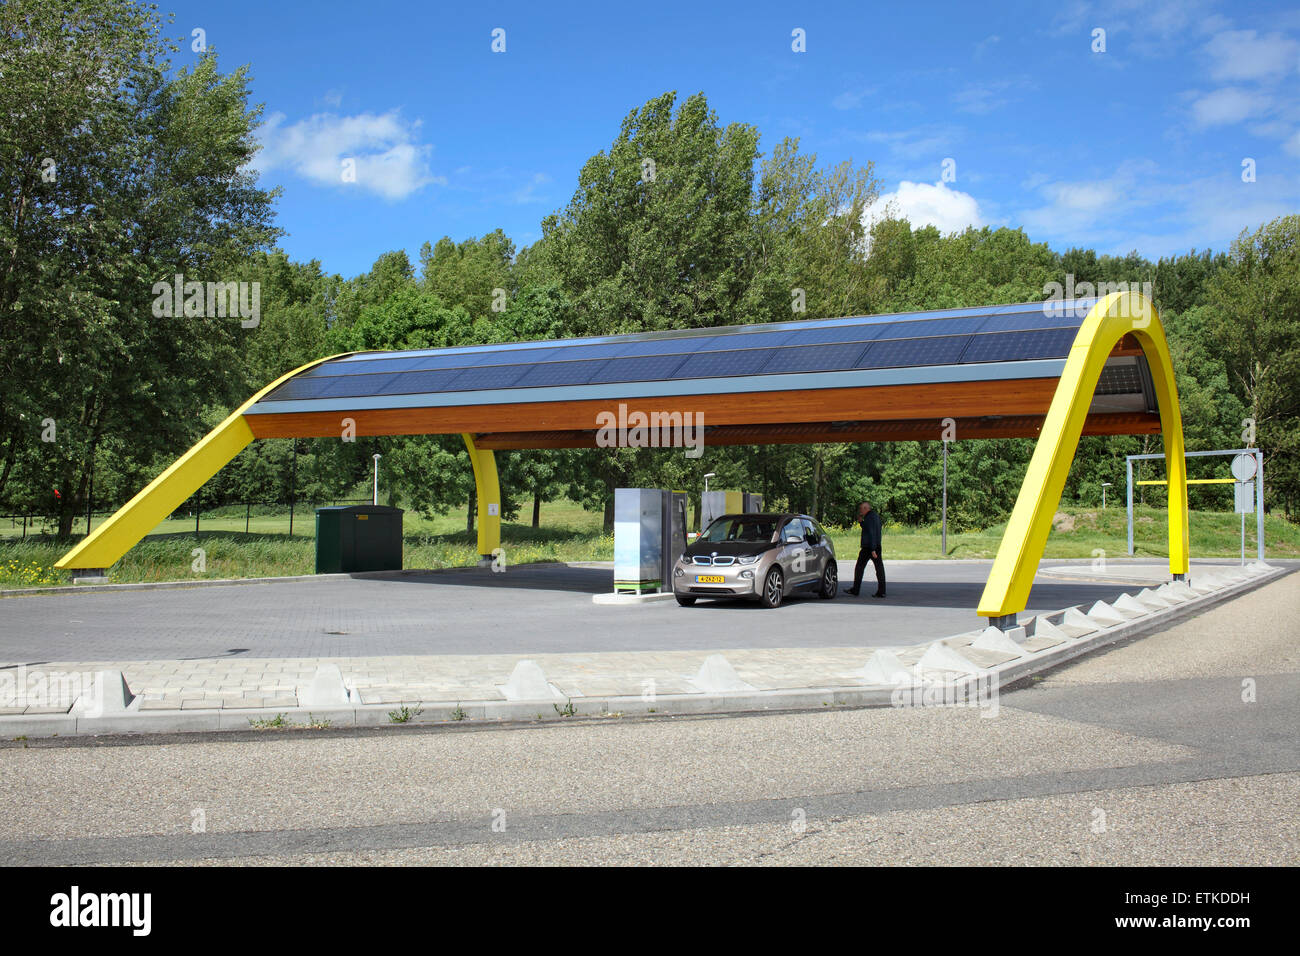 An electric car being charged at a Fastned electric vehicle charging station at a motorway service area in the Netherlands. Stock Photo